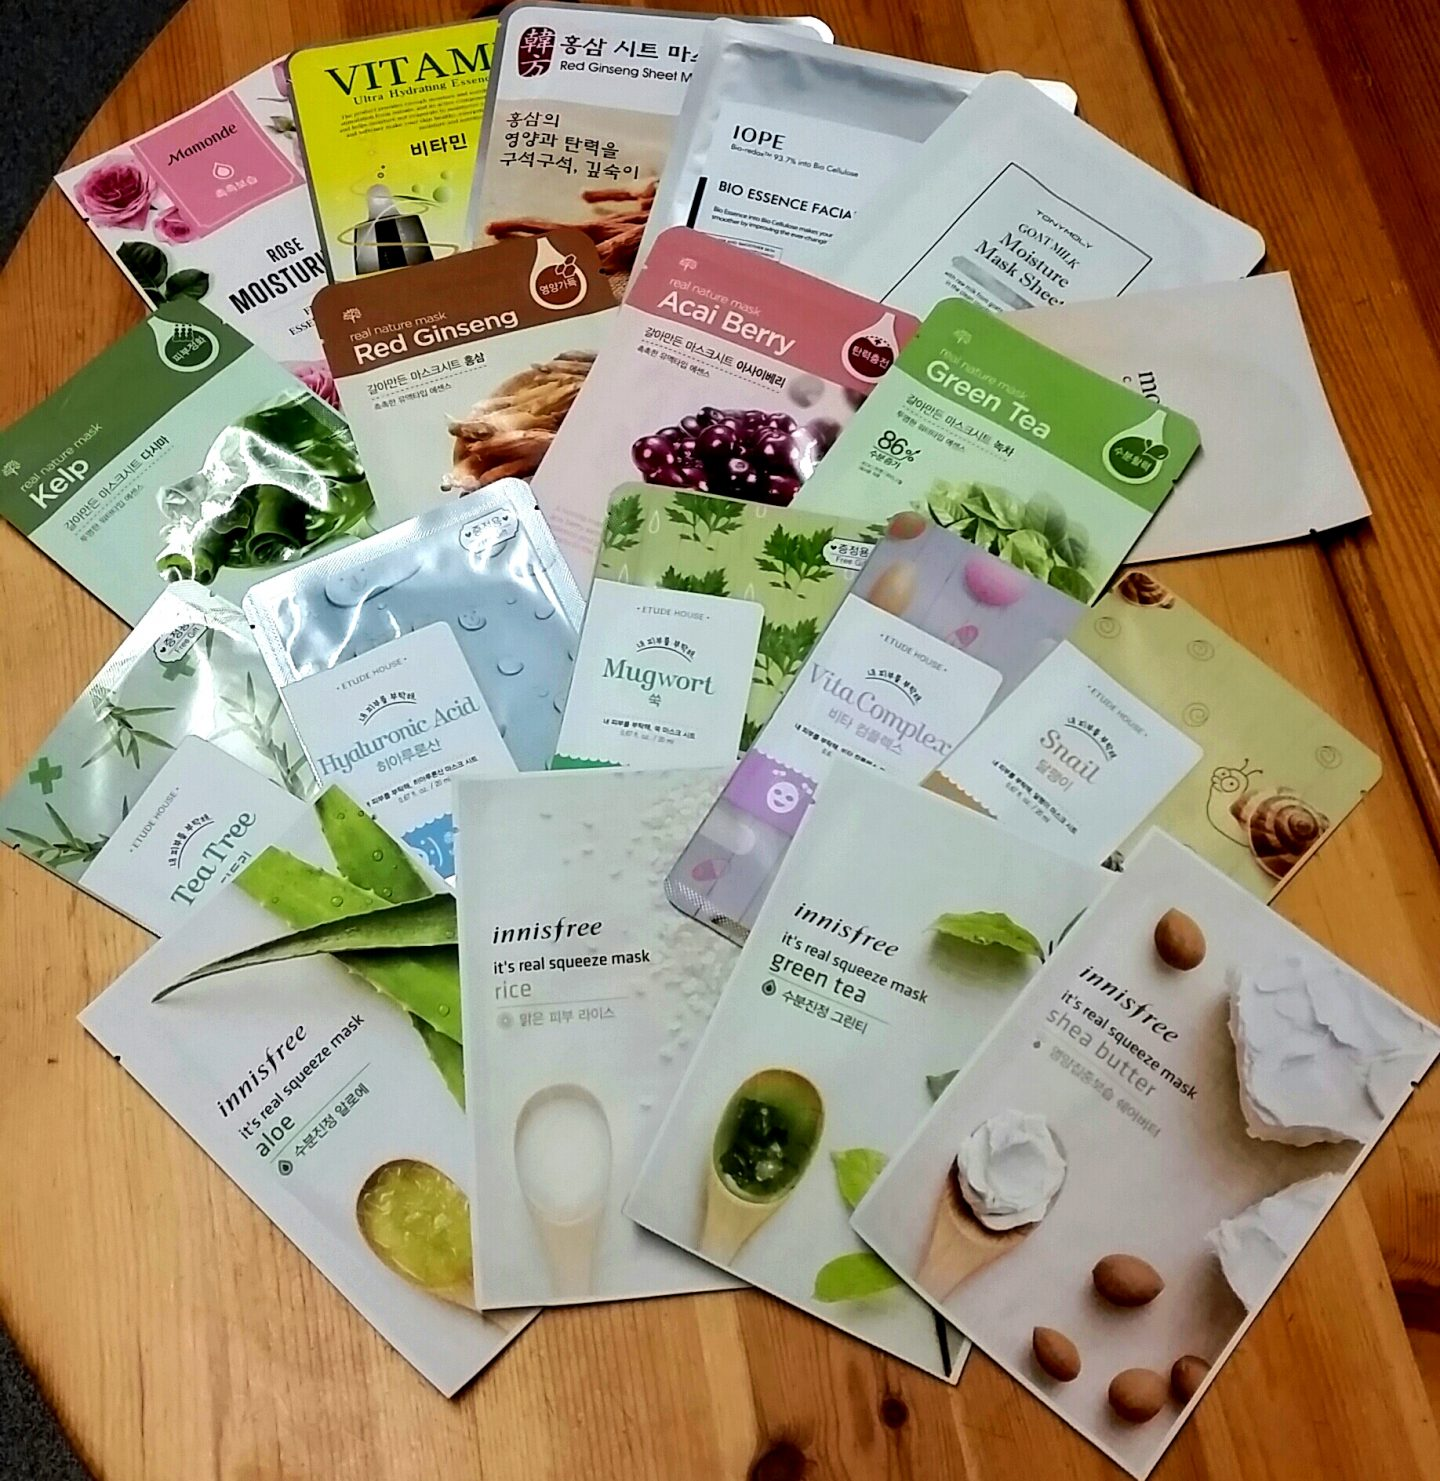 What are sheet masks?